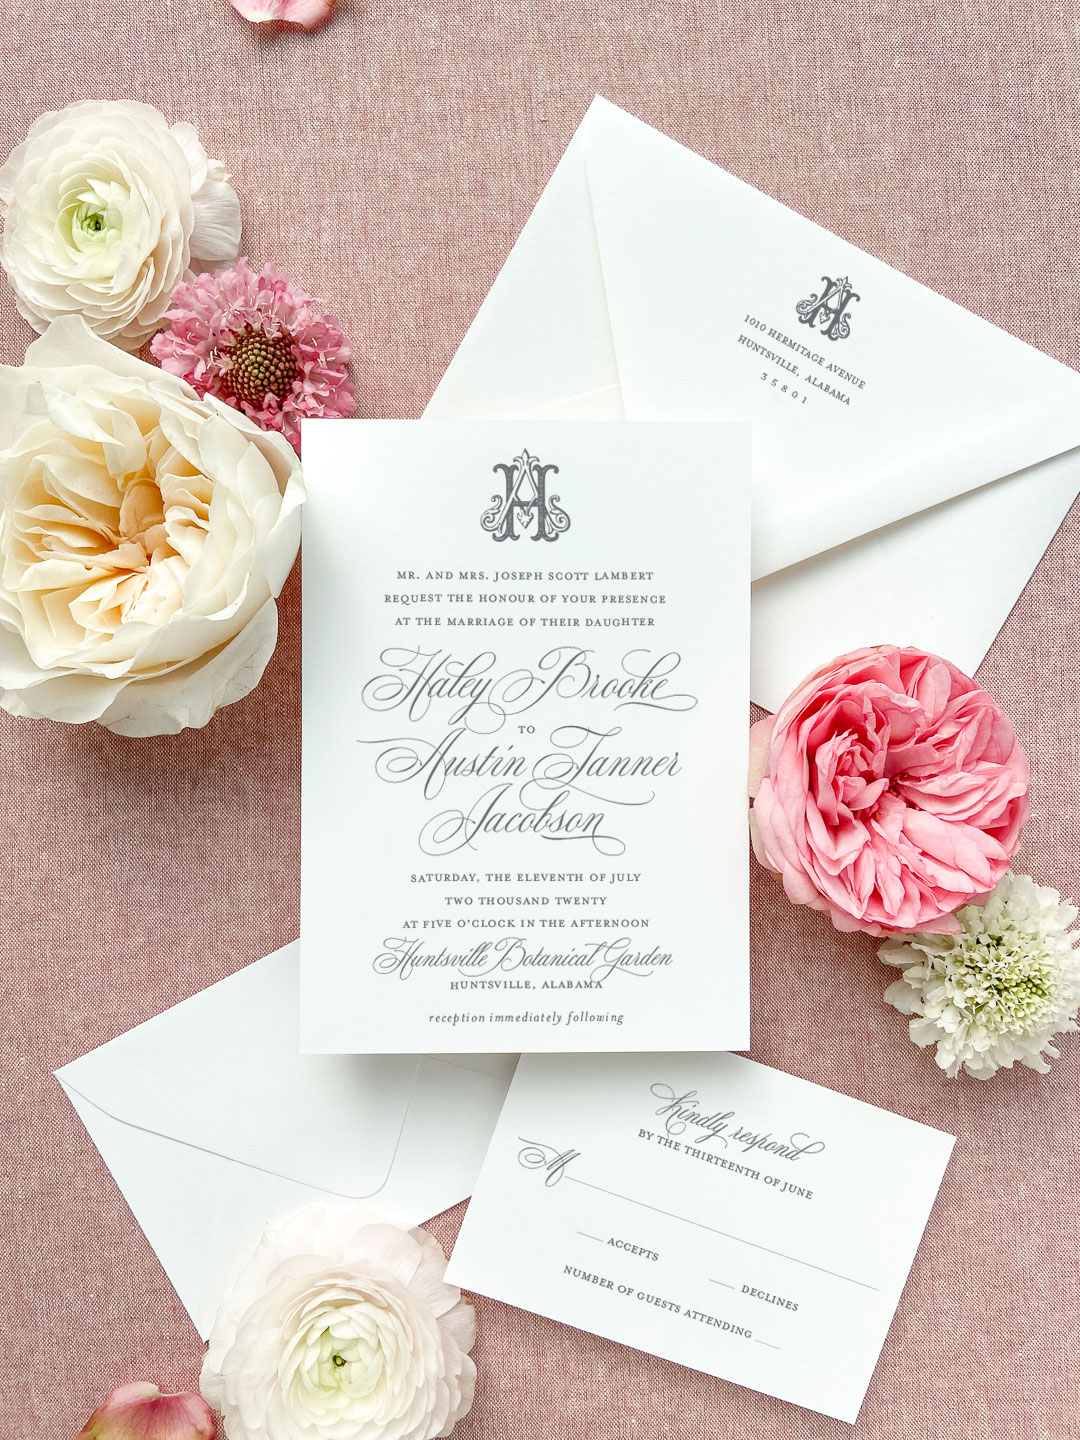 This invitation suite features a floral illustration from the wedding collection. The wedding collection is made up of a traditional layout and artful elements to tailor your wedding invitation to your style. Available in digital printing, letterpress, and foil stamping. Custom wedding invitations by Little Fox Paperie.